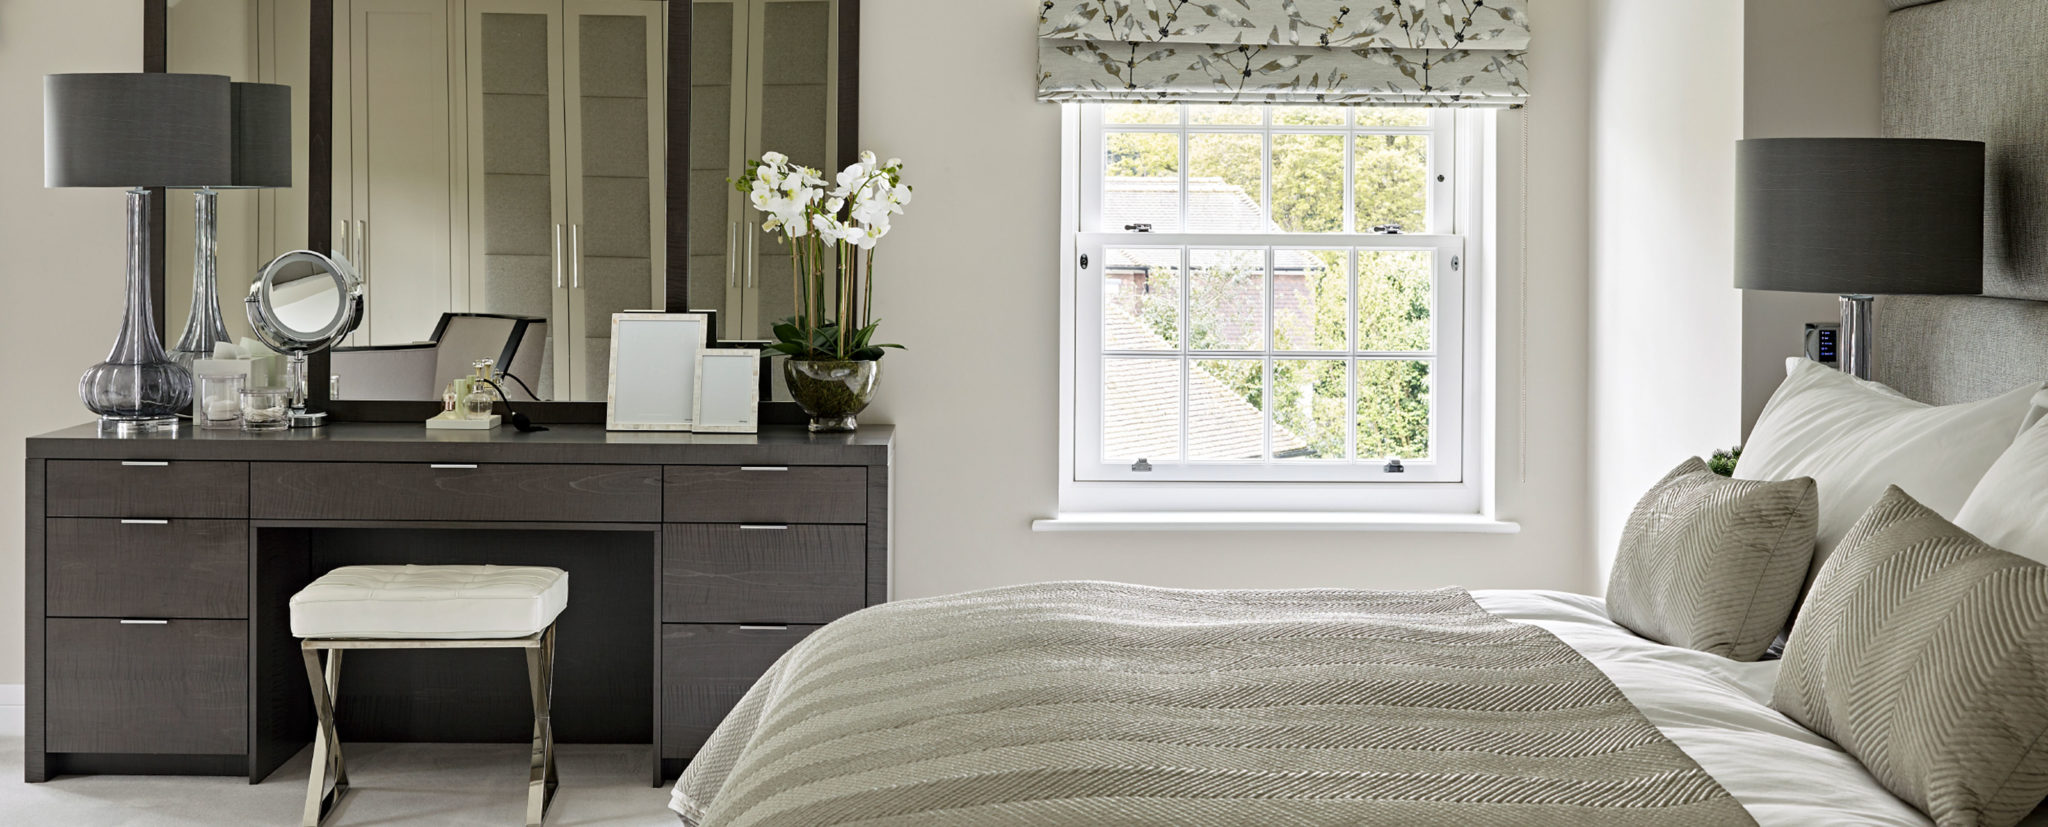 Brayer Luxury Bedroom Design Dressing Table and Fitted Wardrobes in Reflection of the Mirror